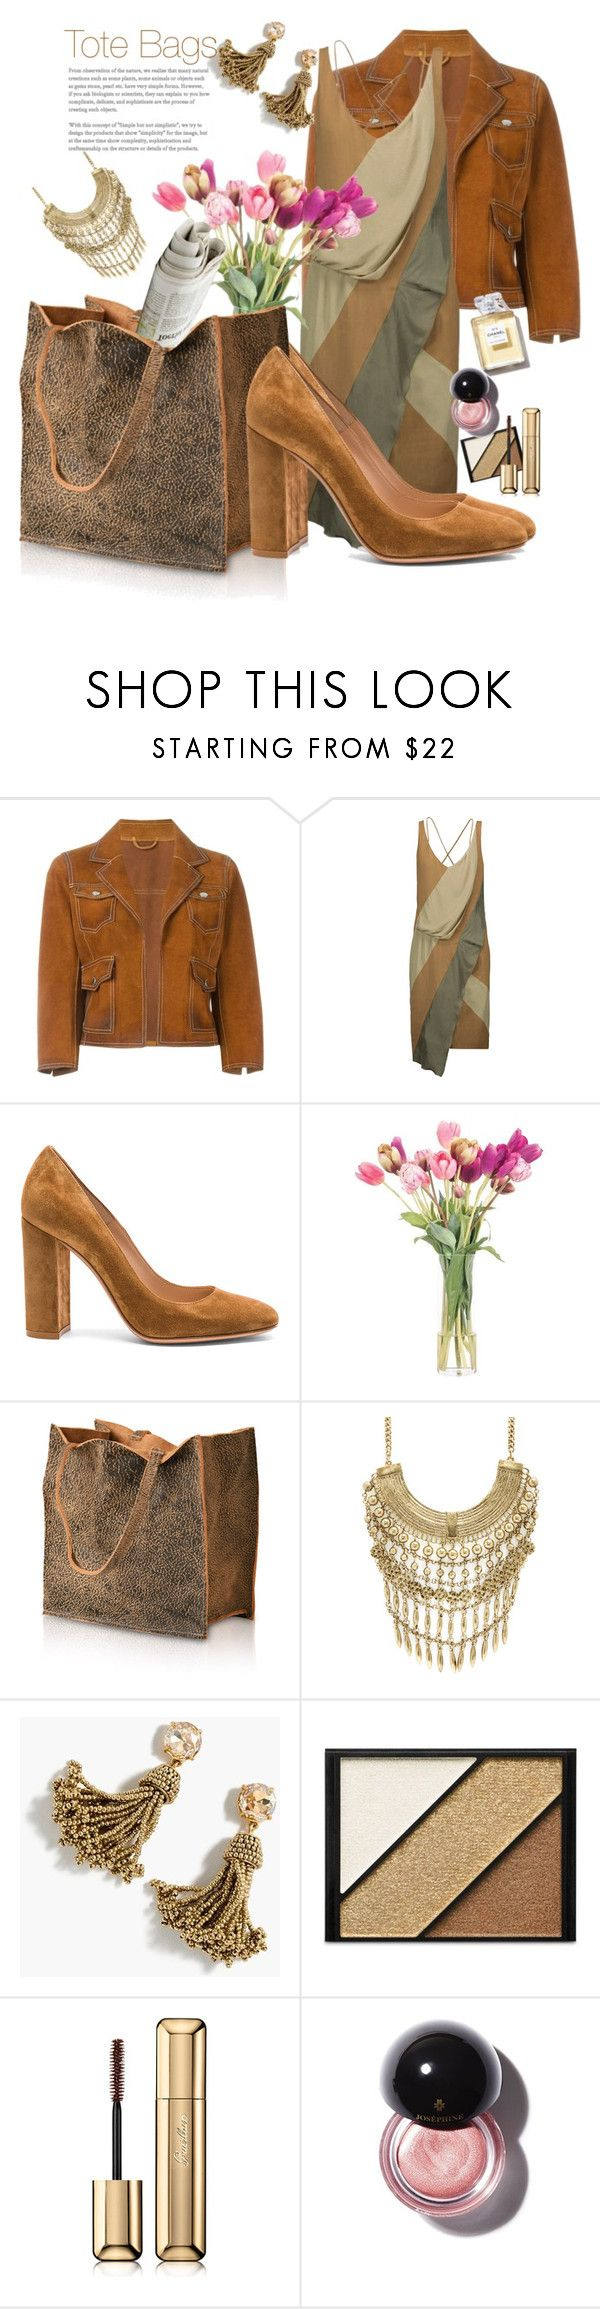 """""""Tote Bags"""" by marionmeyer ❤ liked on Polyvore featuring Dsquared2, Belstaff, Gianvito Rossi, NDI, Marabelle, J.Crew, Elizabeth Arden, Guerlain and totebags"""